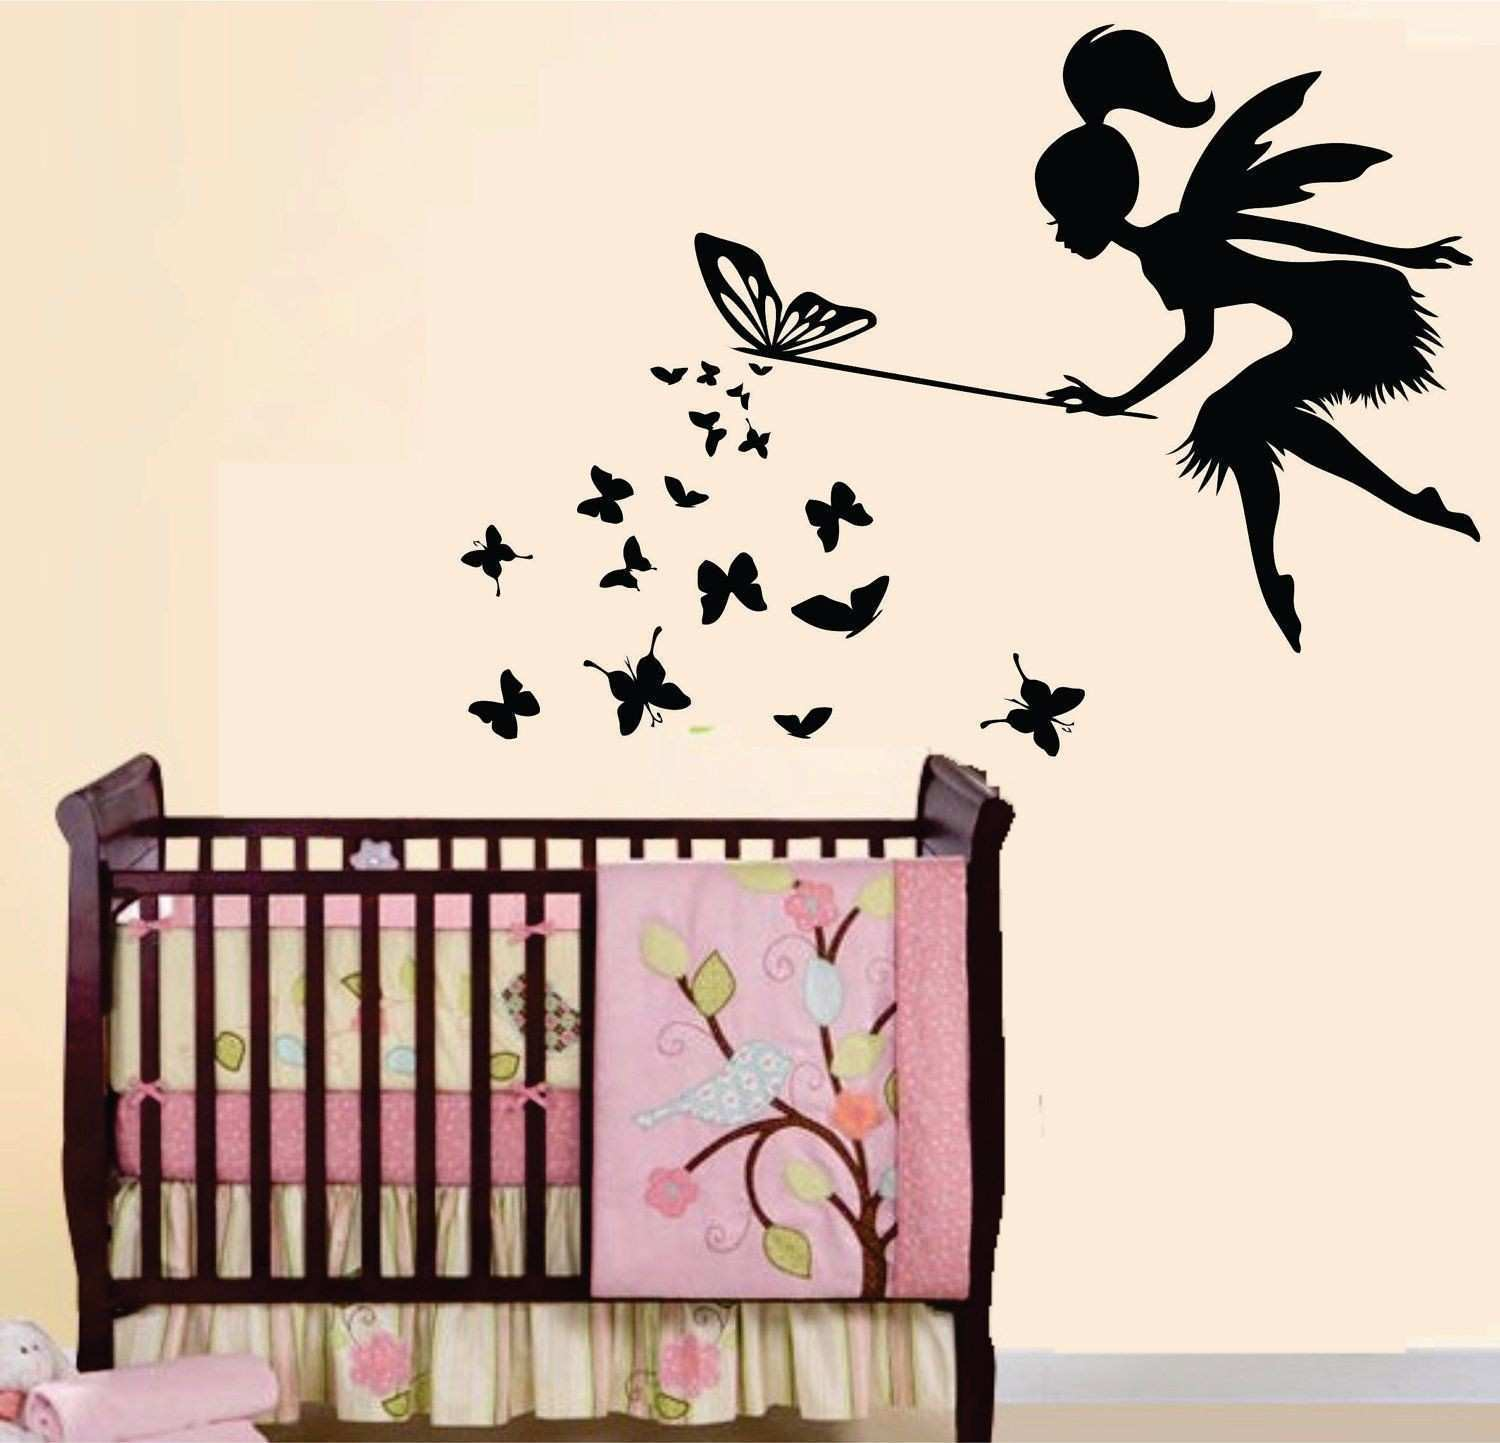 Vinyl Wall Decal Baby Nursery Kids Room Butterfly Fairy 0265